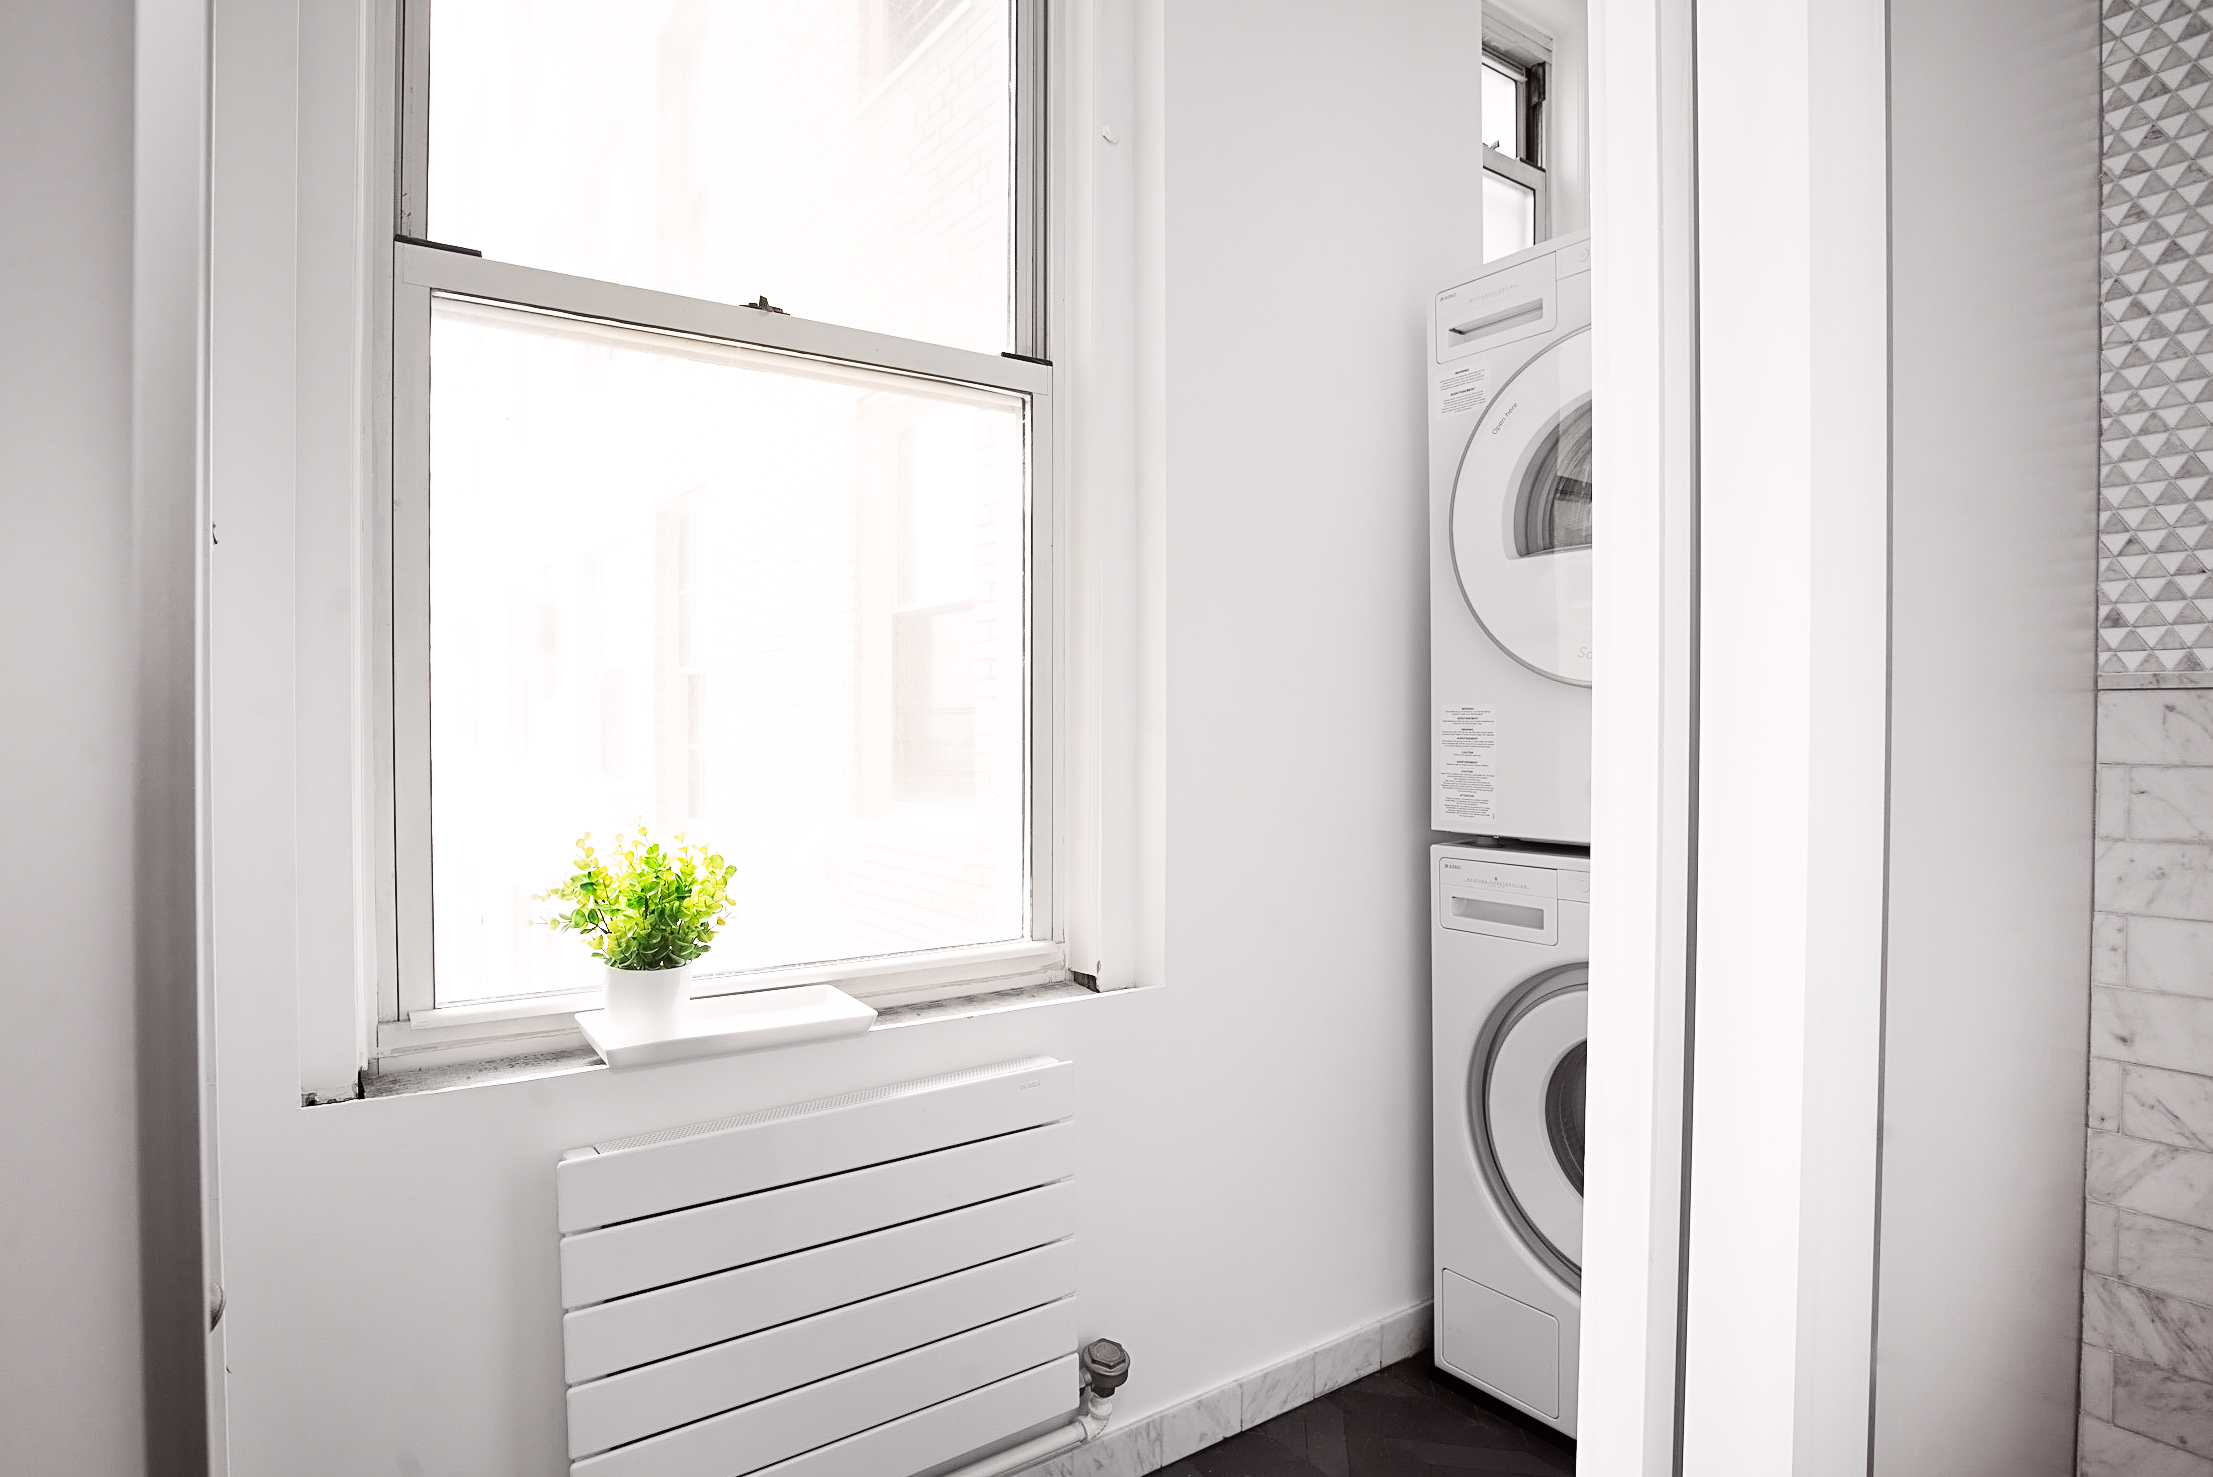 With a slim footprint that took very little space in a luxurious bathroom, we created a fully functional yet hidden laundry room.